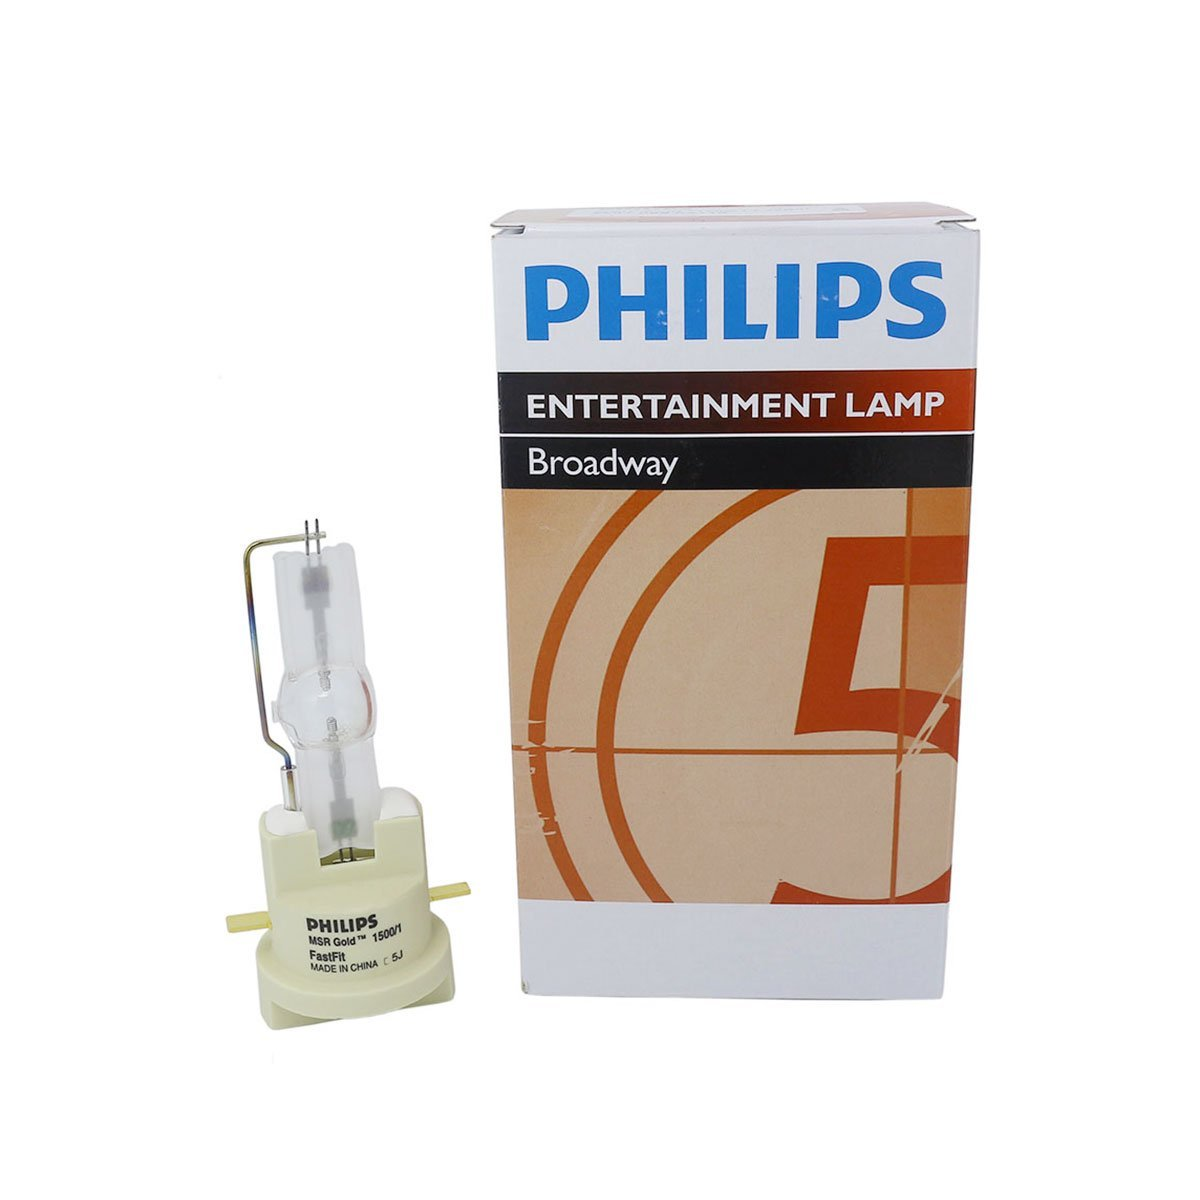 Philips MSR Gold 1500/1 FastFit 1500W AC Lamp for Touring/Stage Lighting